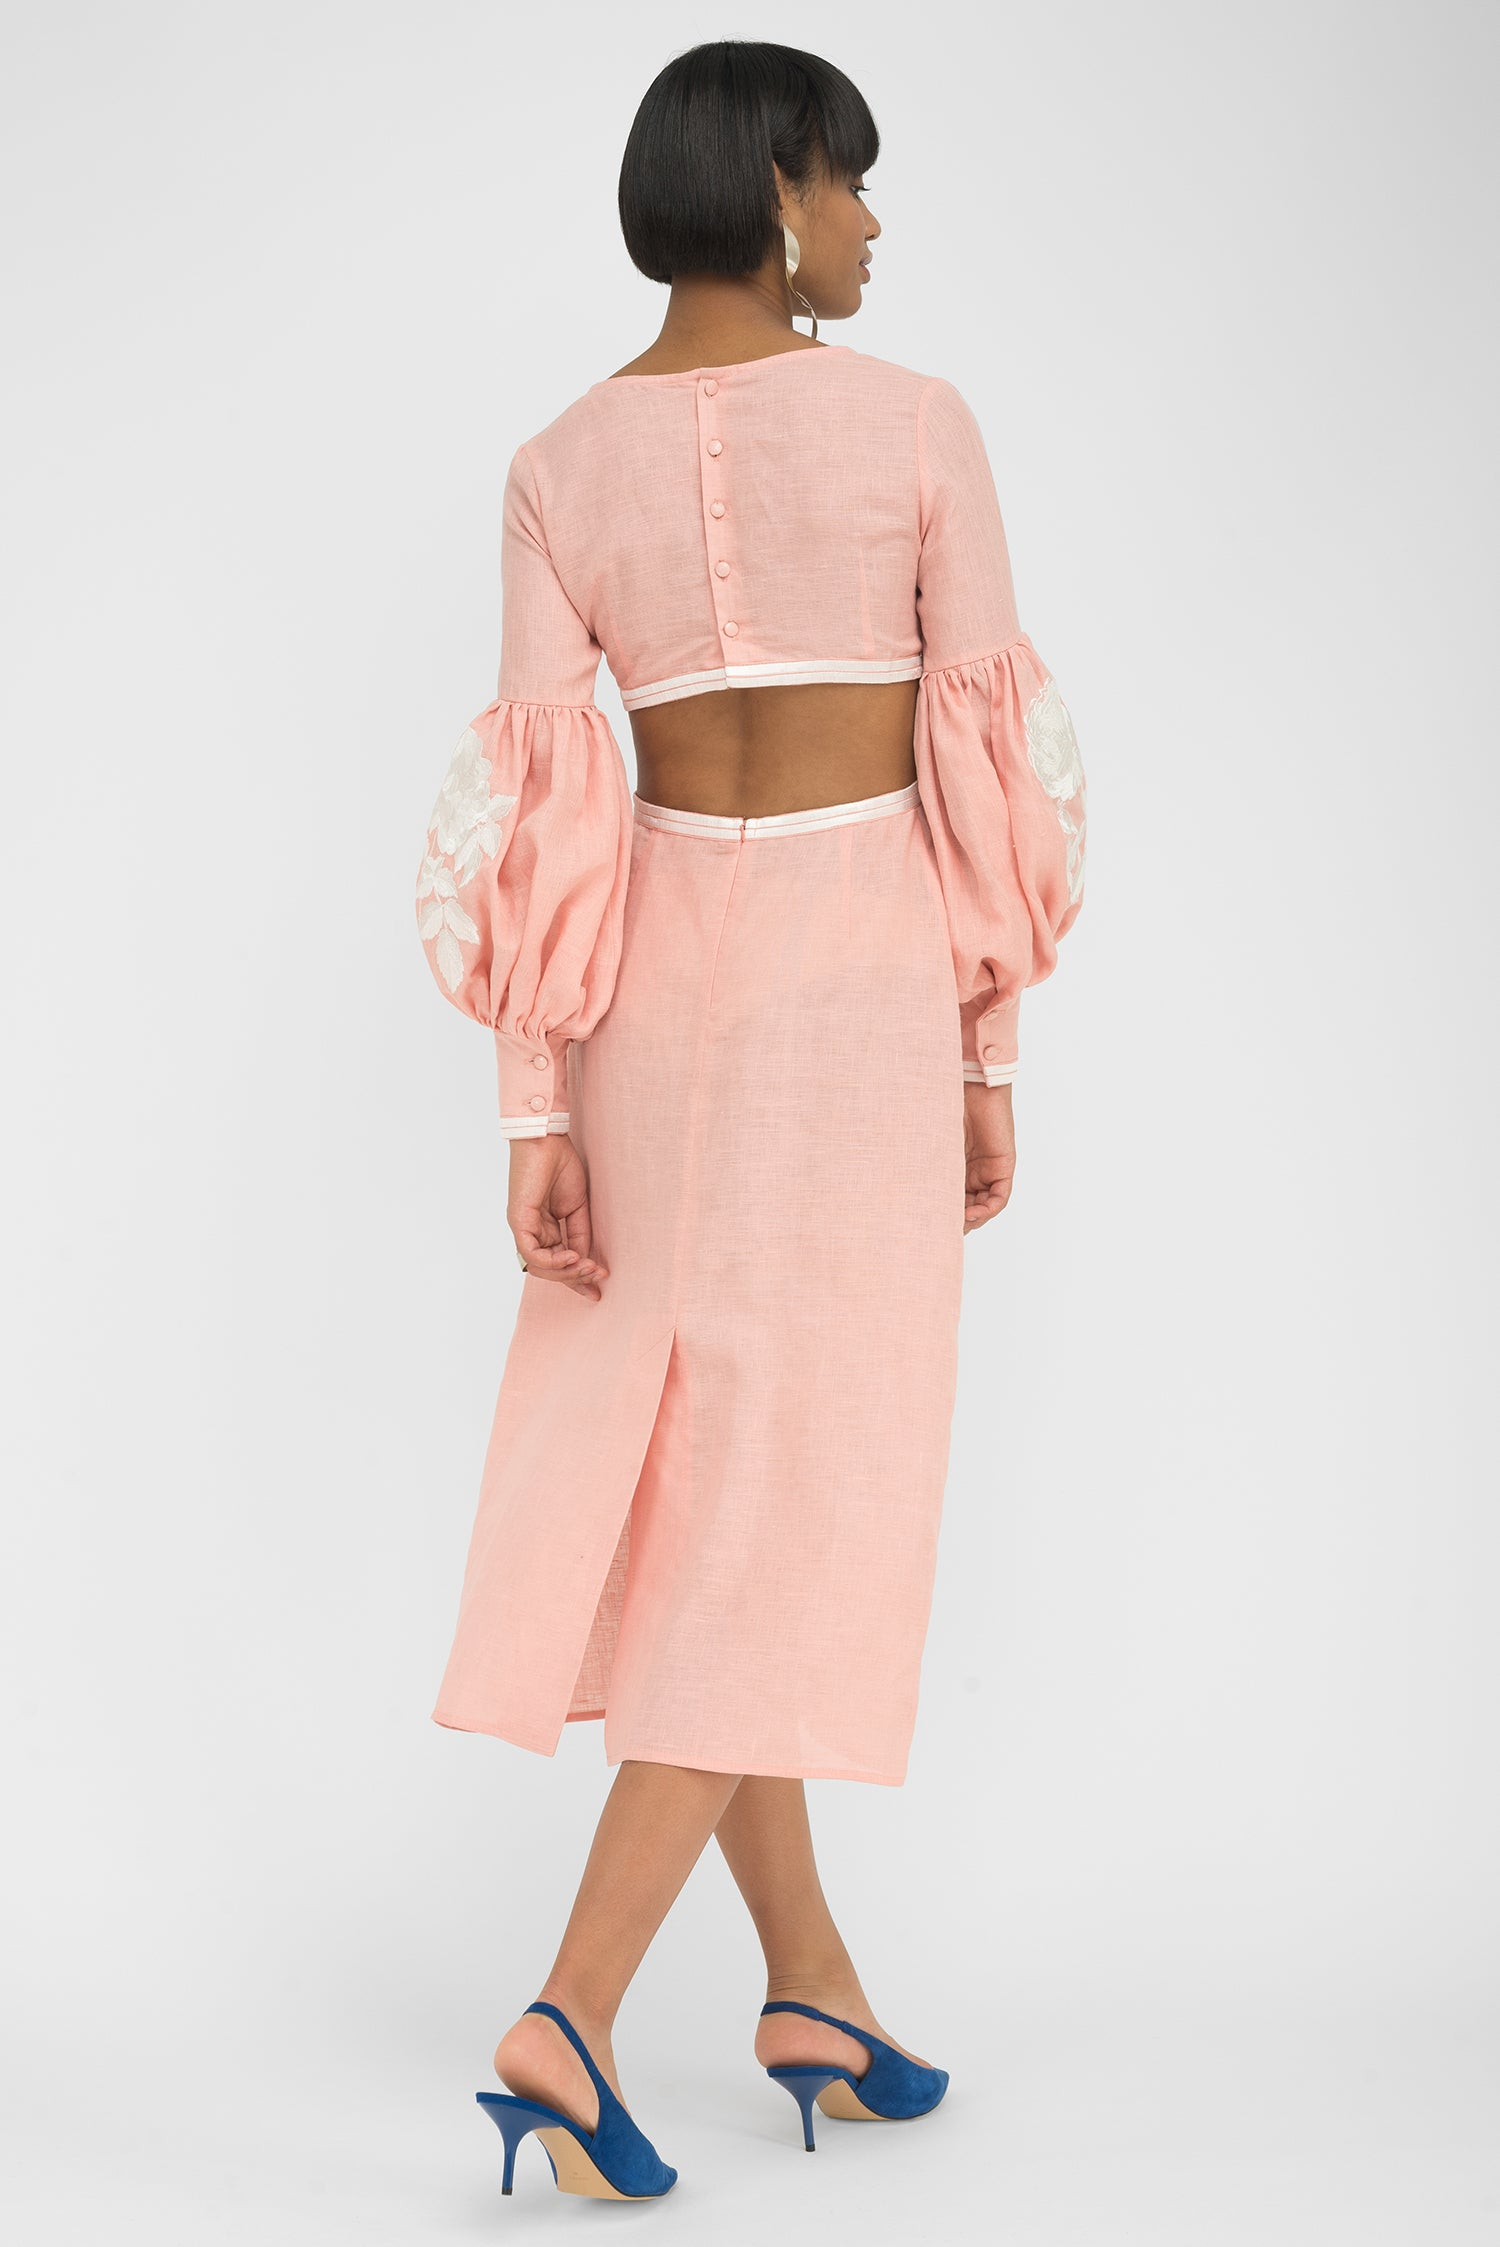 FANM MON EFES Peach Linen Open Back Midi Dress